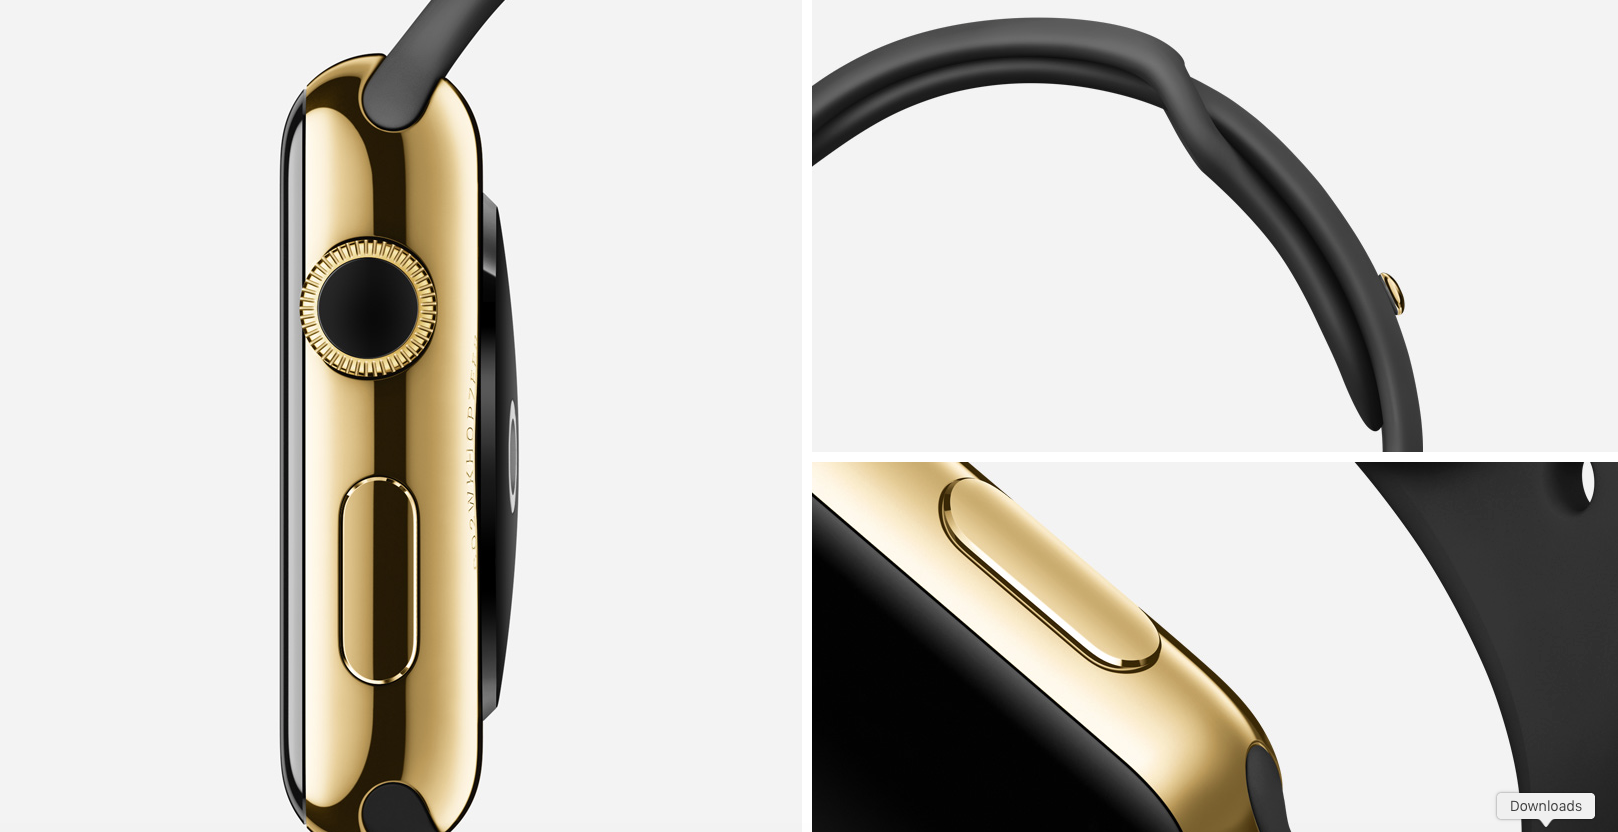 Apple hires another Burberry employee as Apple Watch launch nears